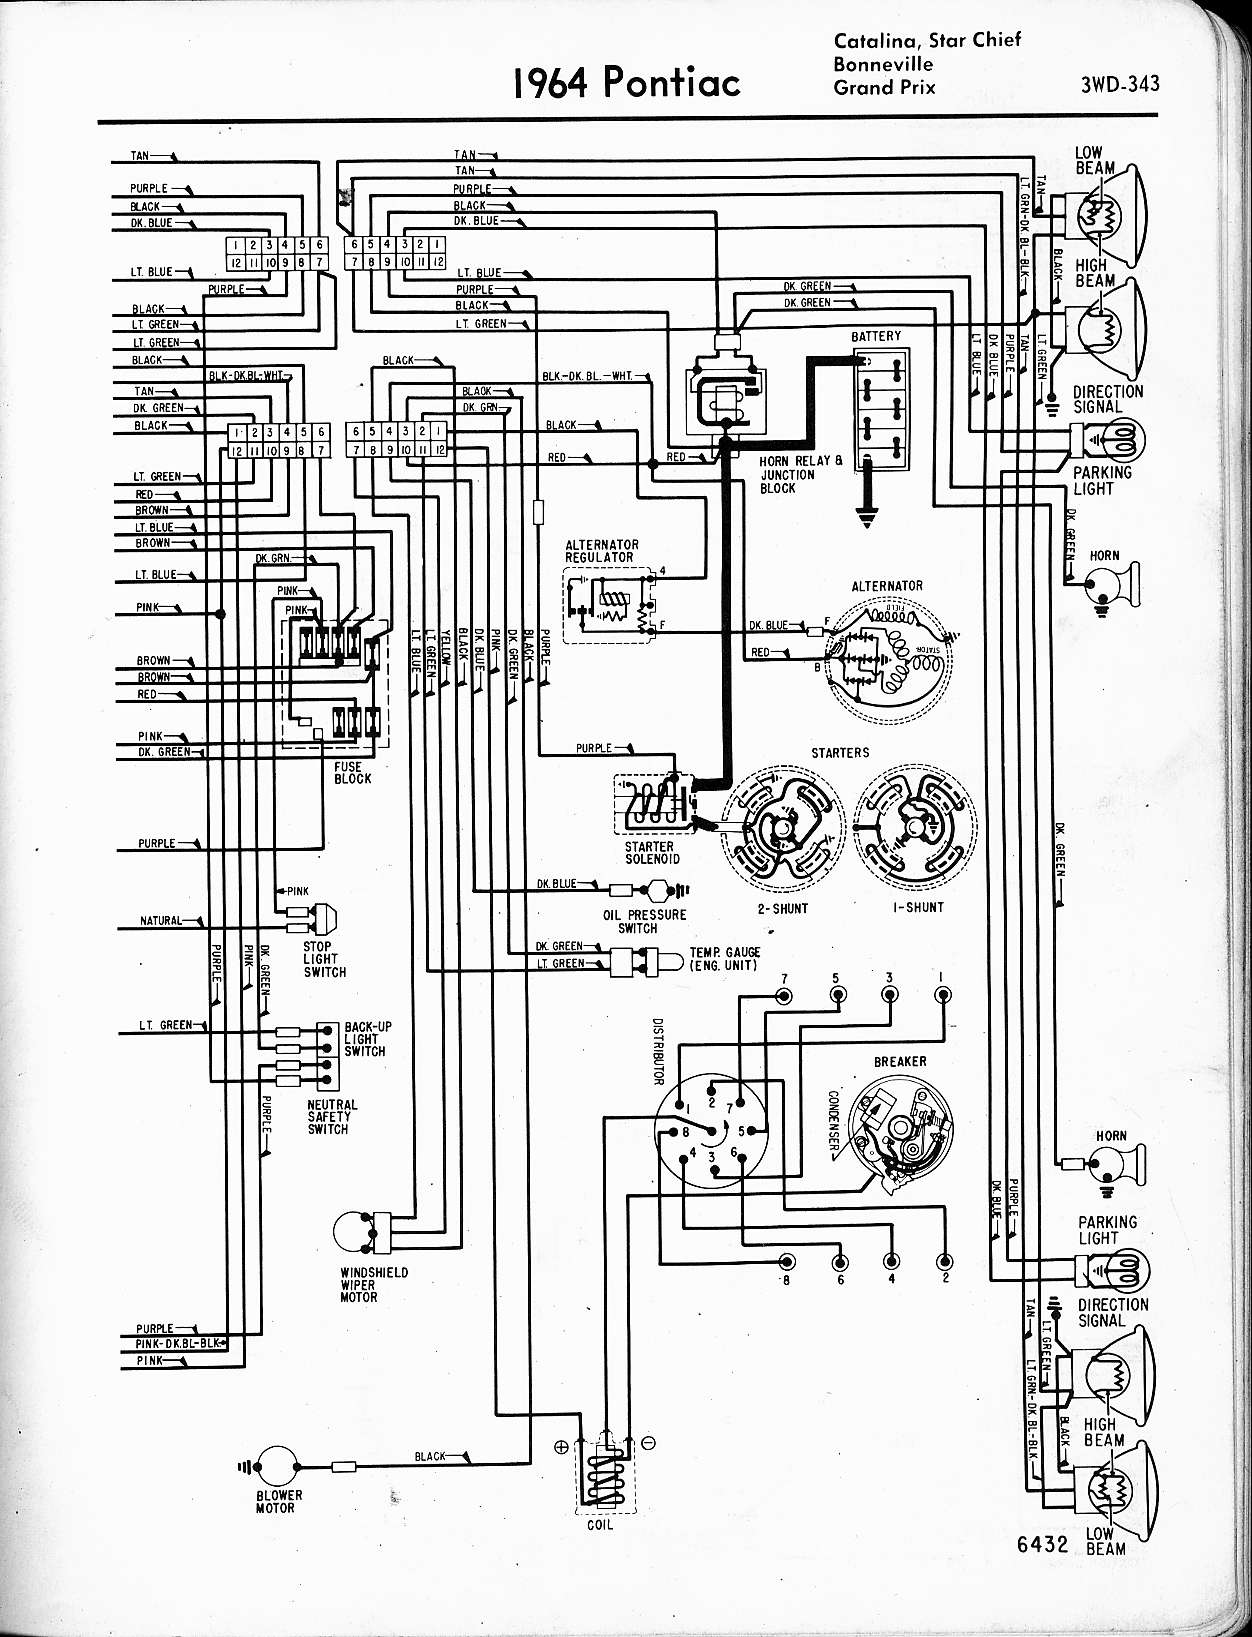 wallace racing wiring diagrams rh wallaceracing com 1964 pontiac tempest wiring diagram 1964 pontiac catalina wiring diagram